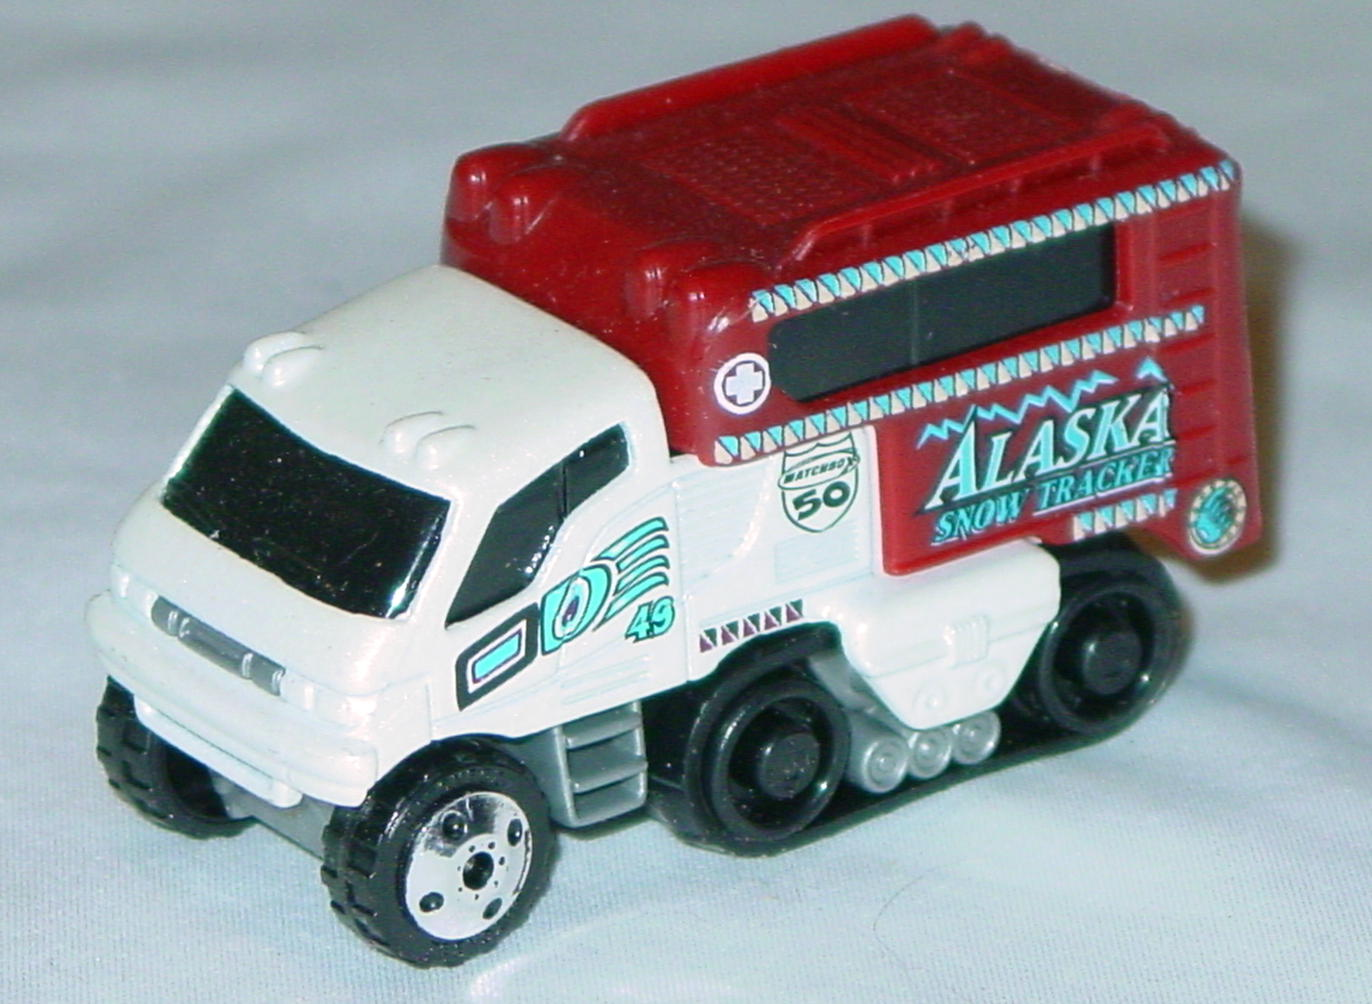 Offshore SuperFast 06 I 3 - Arctic Track Truck iridescent White 49 Alaska made in China